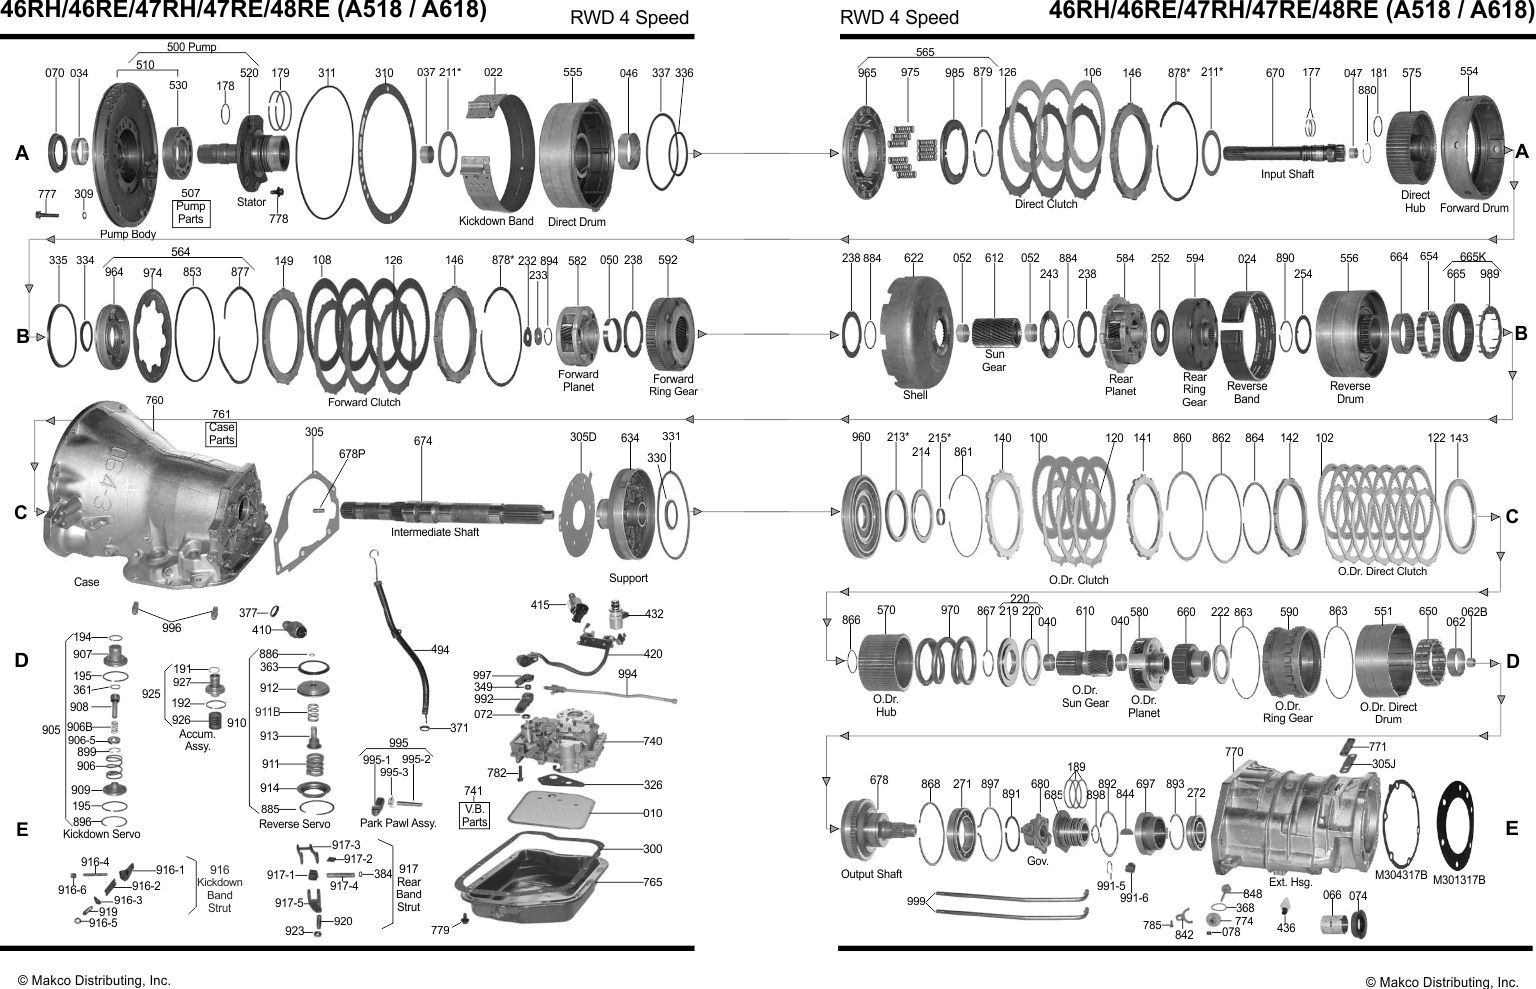 hight resolution of 518 automatic overdrive diagram a518 46re a618 47re 48re 2001 dodge ram 1500 46re transmission diagram dodge 46re transmission diagram